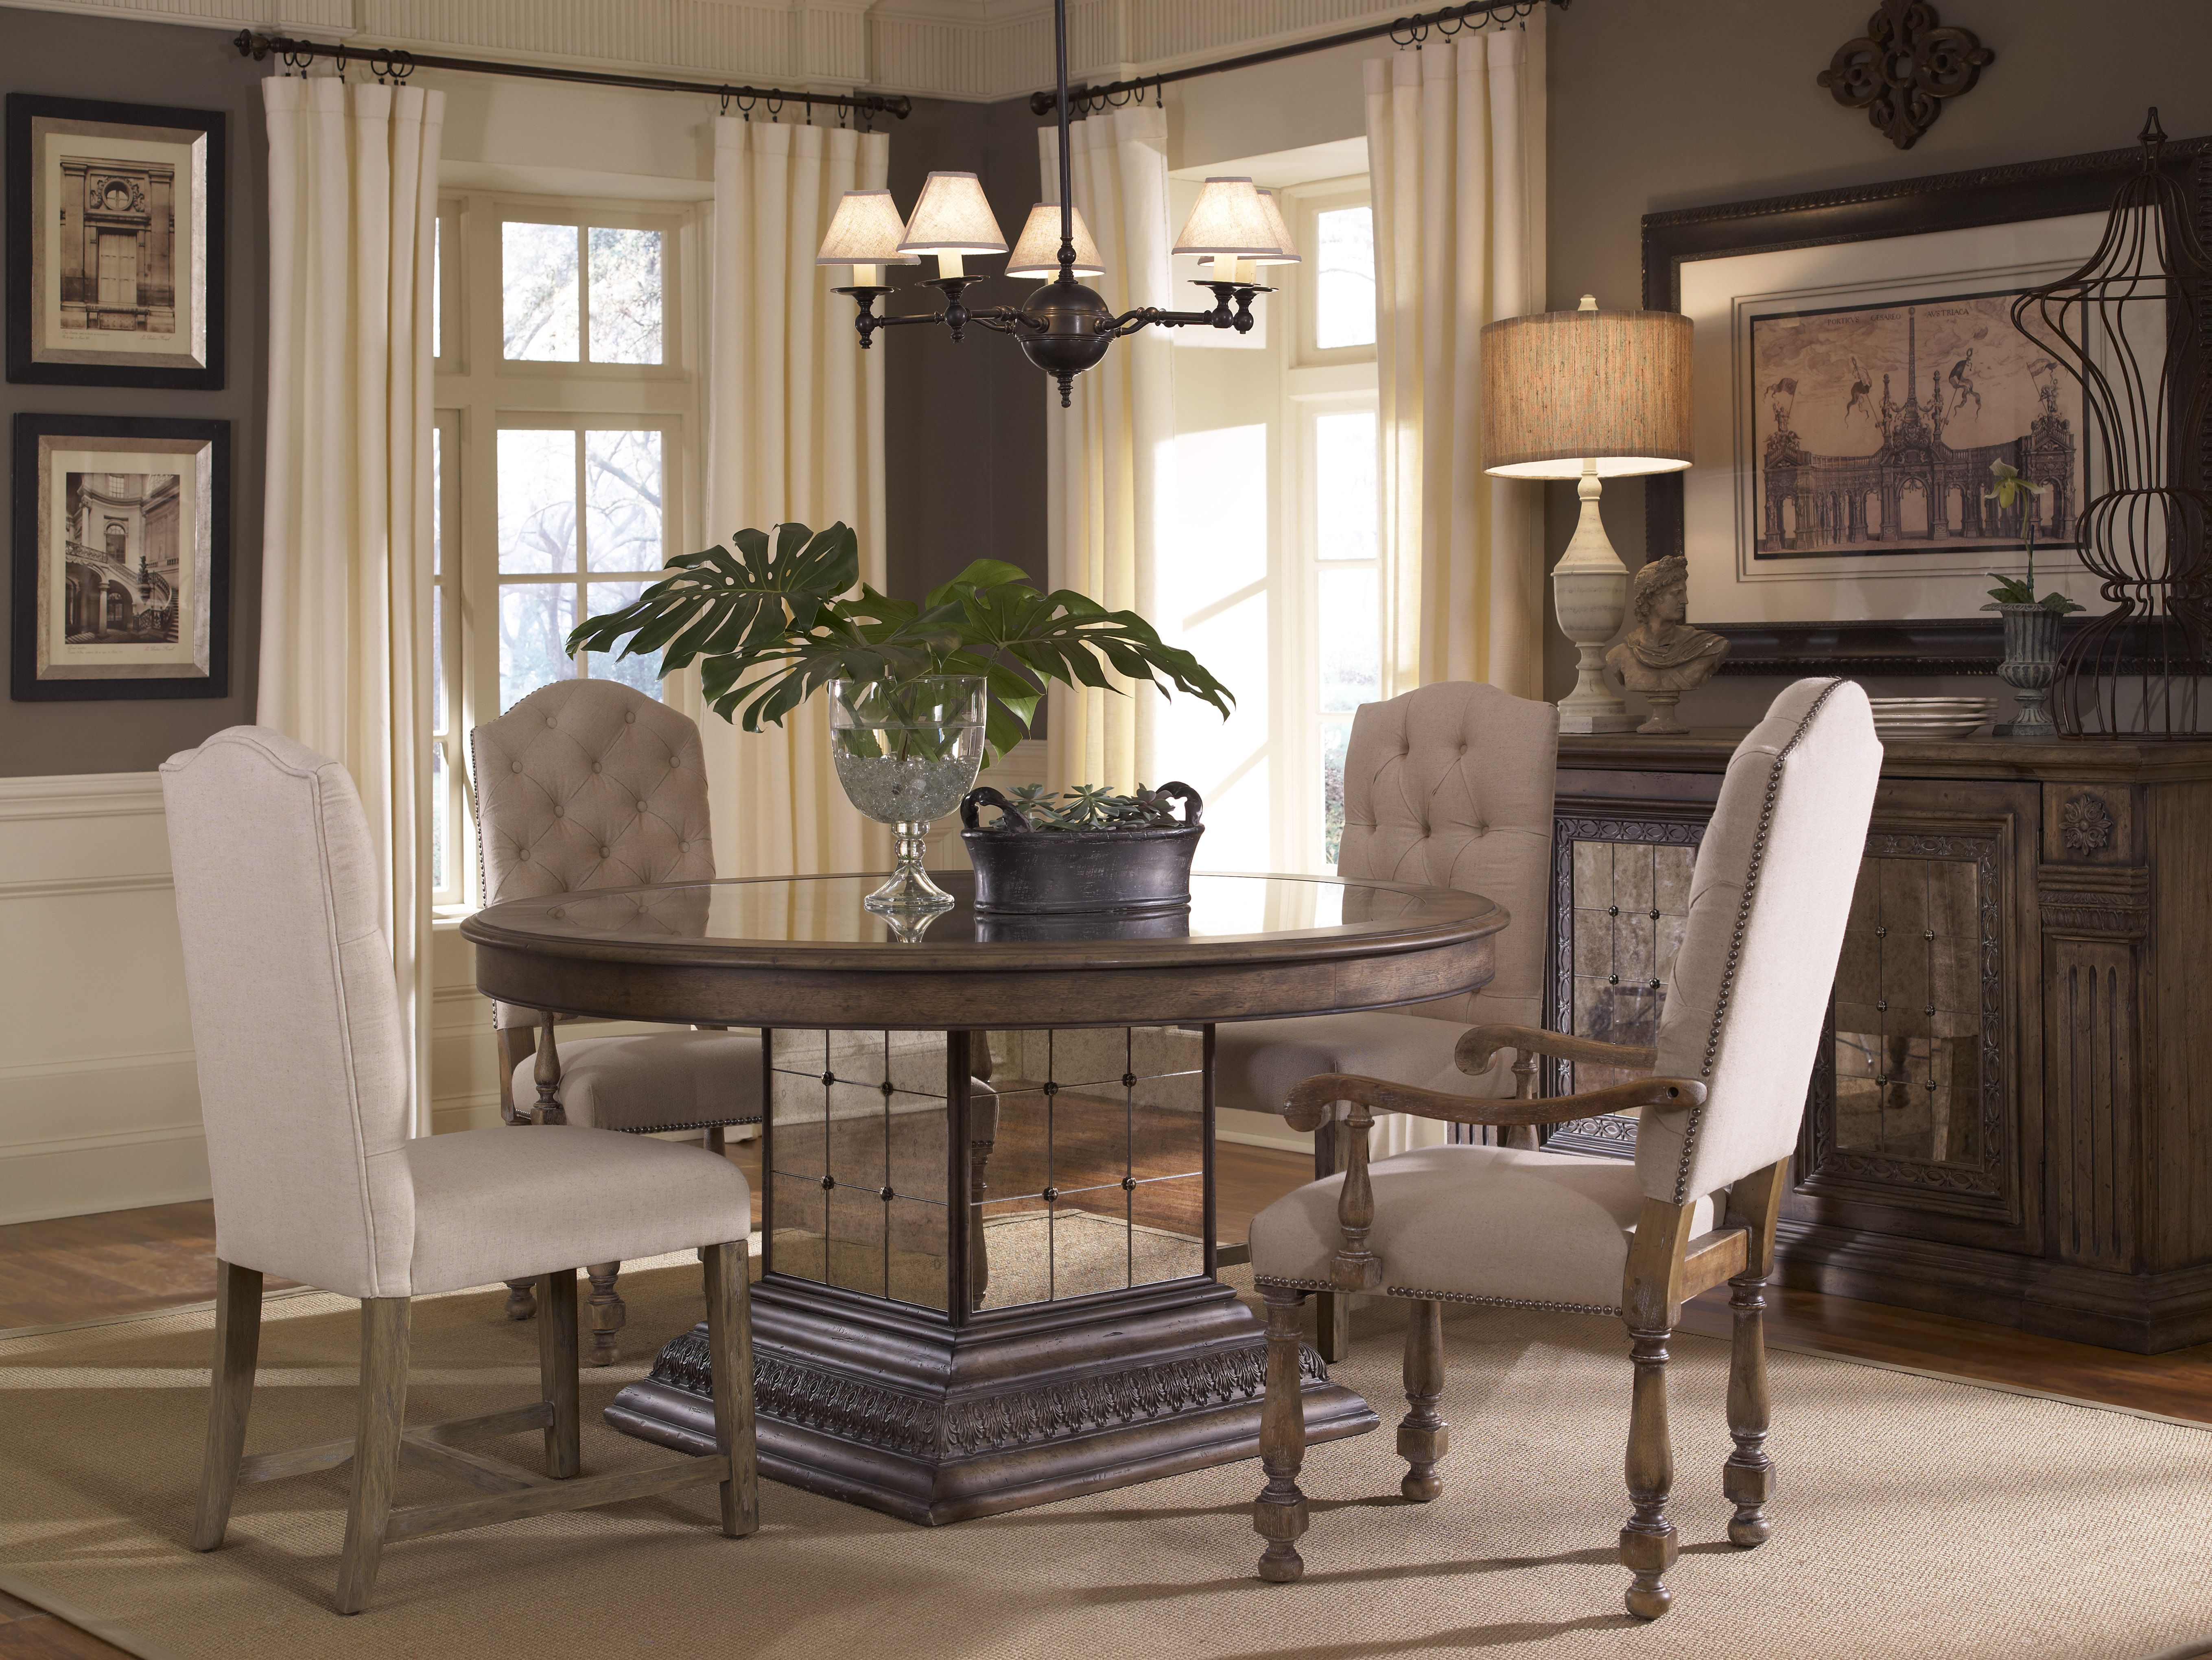 Pin On Neutral Colors Pantone In Decor Dining room stores best free home